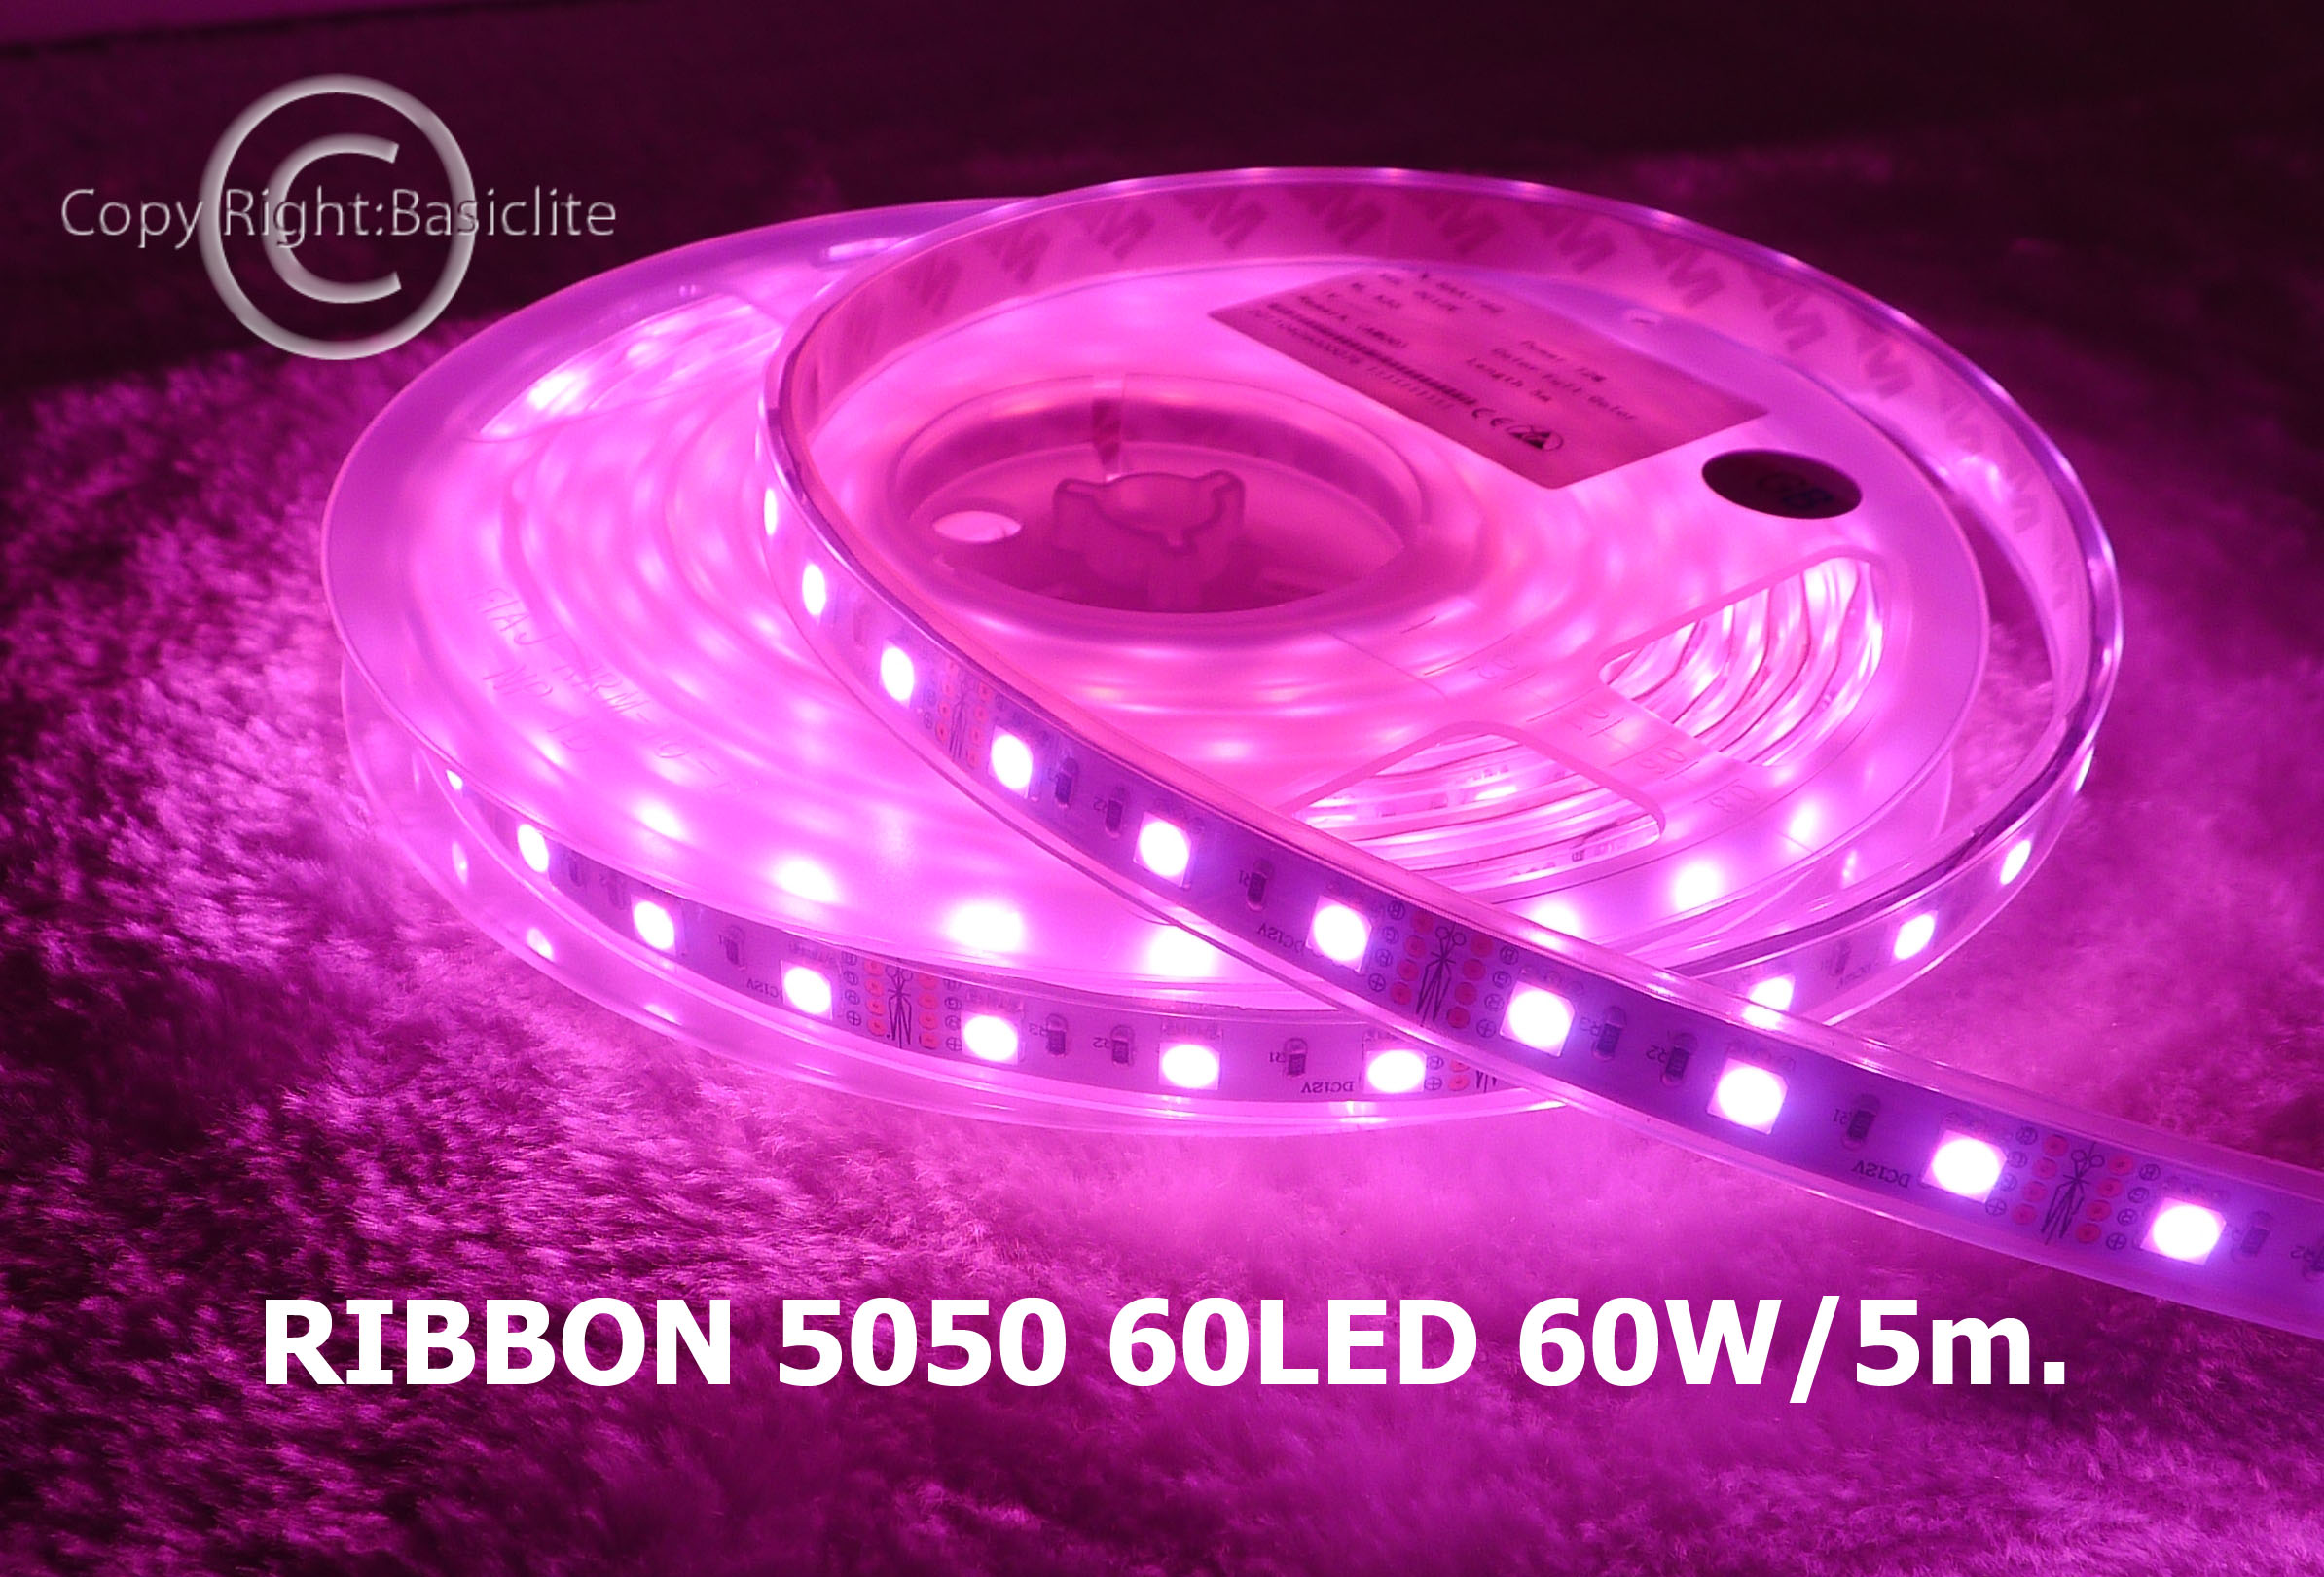 LED RIBBON 60LED 60W (RGB)/ Code: 1-11-00006